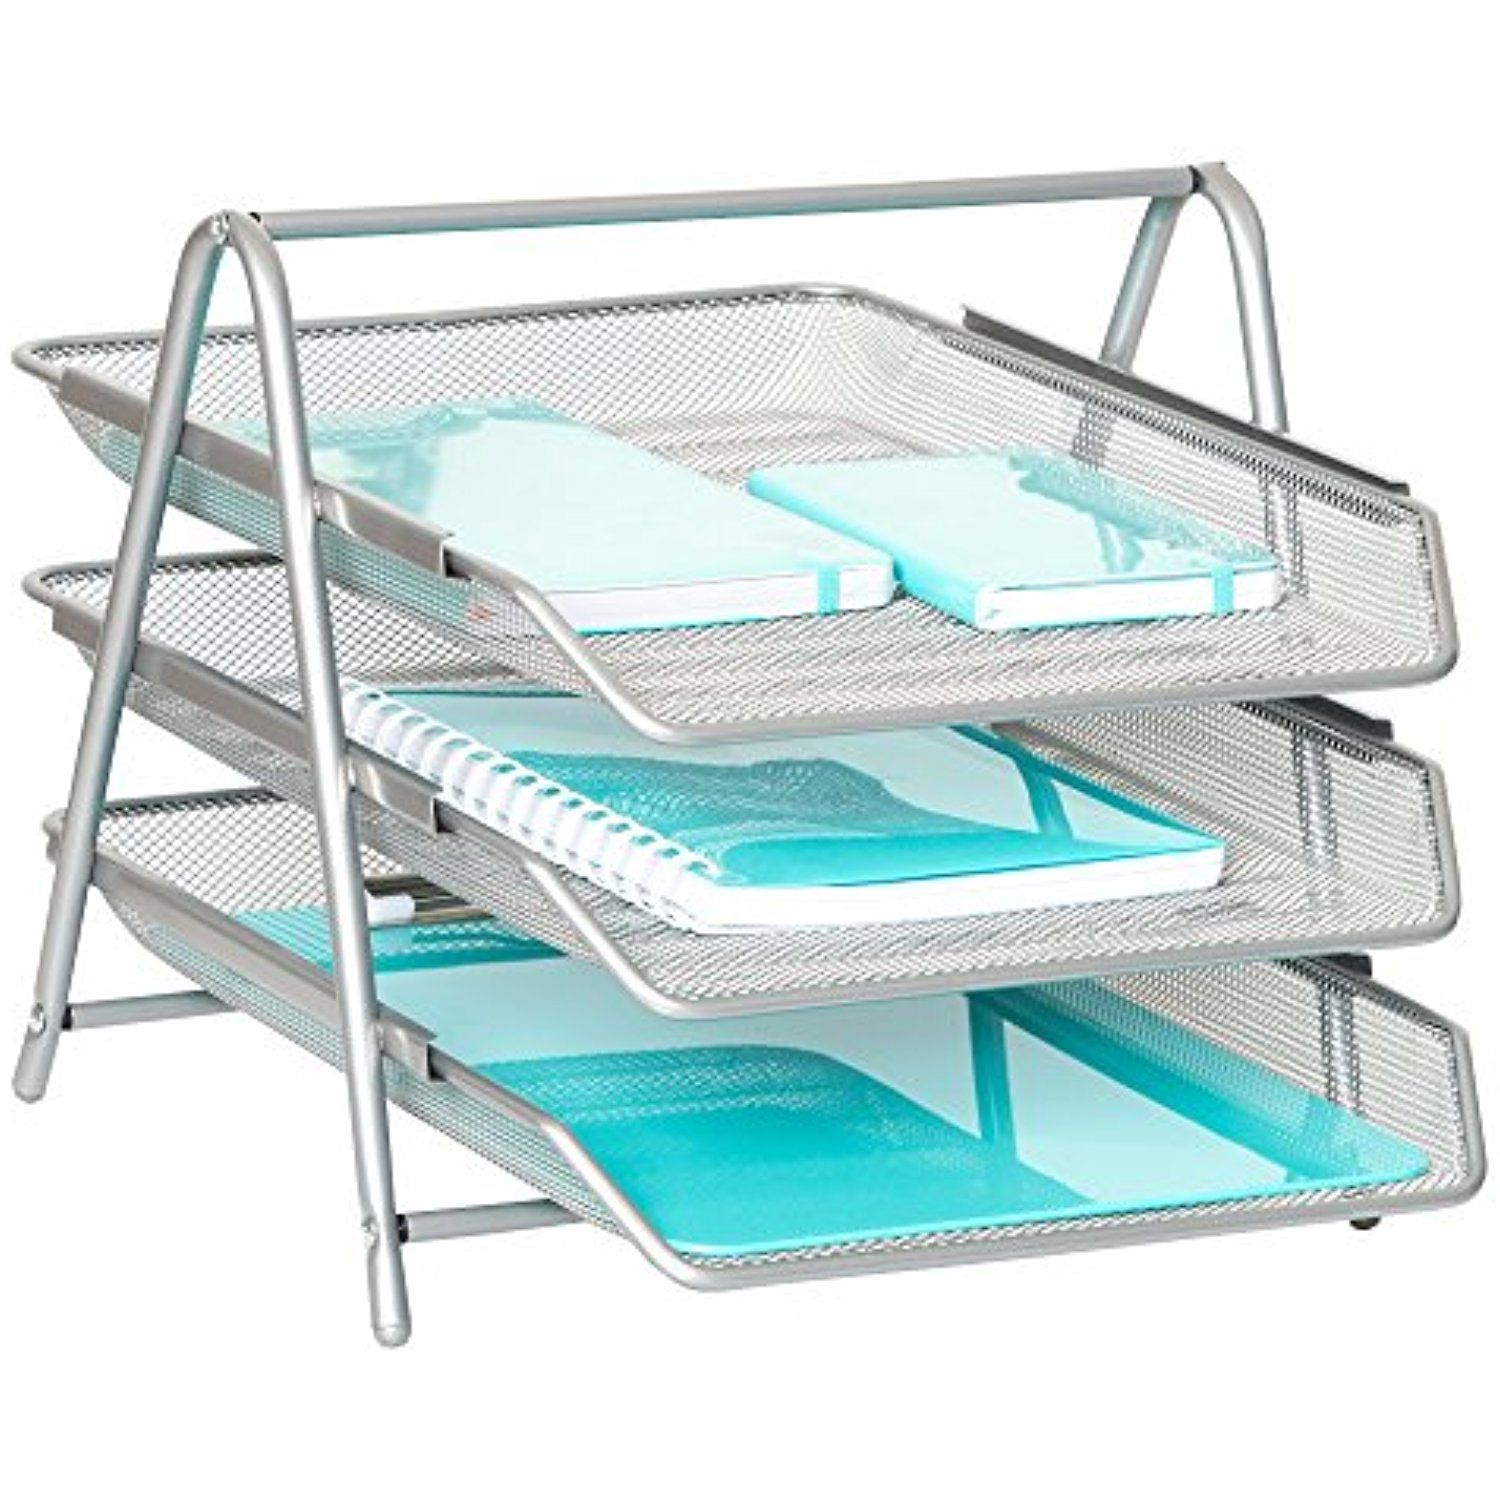 3-Tier Letter Tray Organizer – Wire Mesh Paper Tray for Home or ...